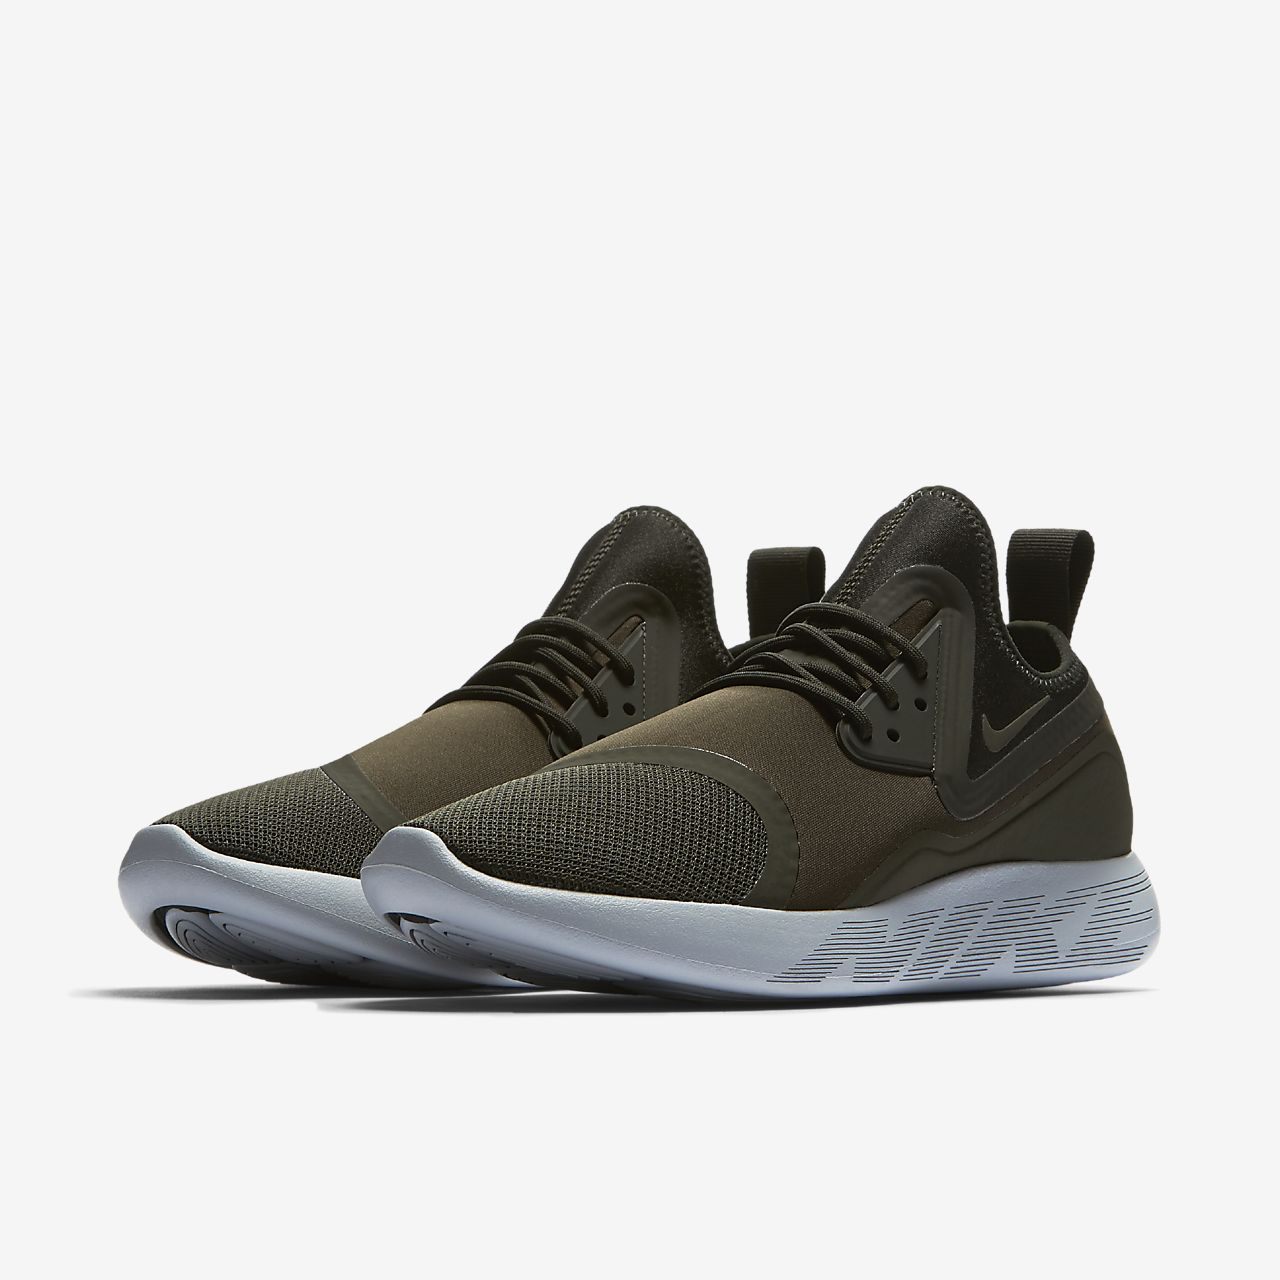 ... Chaussure Nike LunarCharge Essential pour Homme